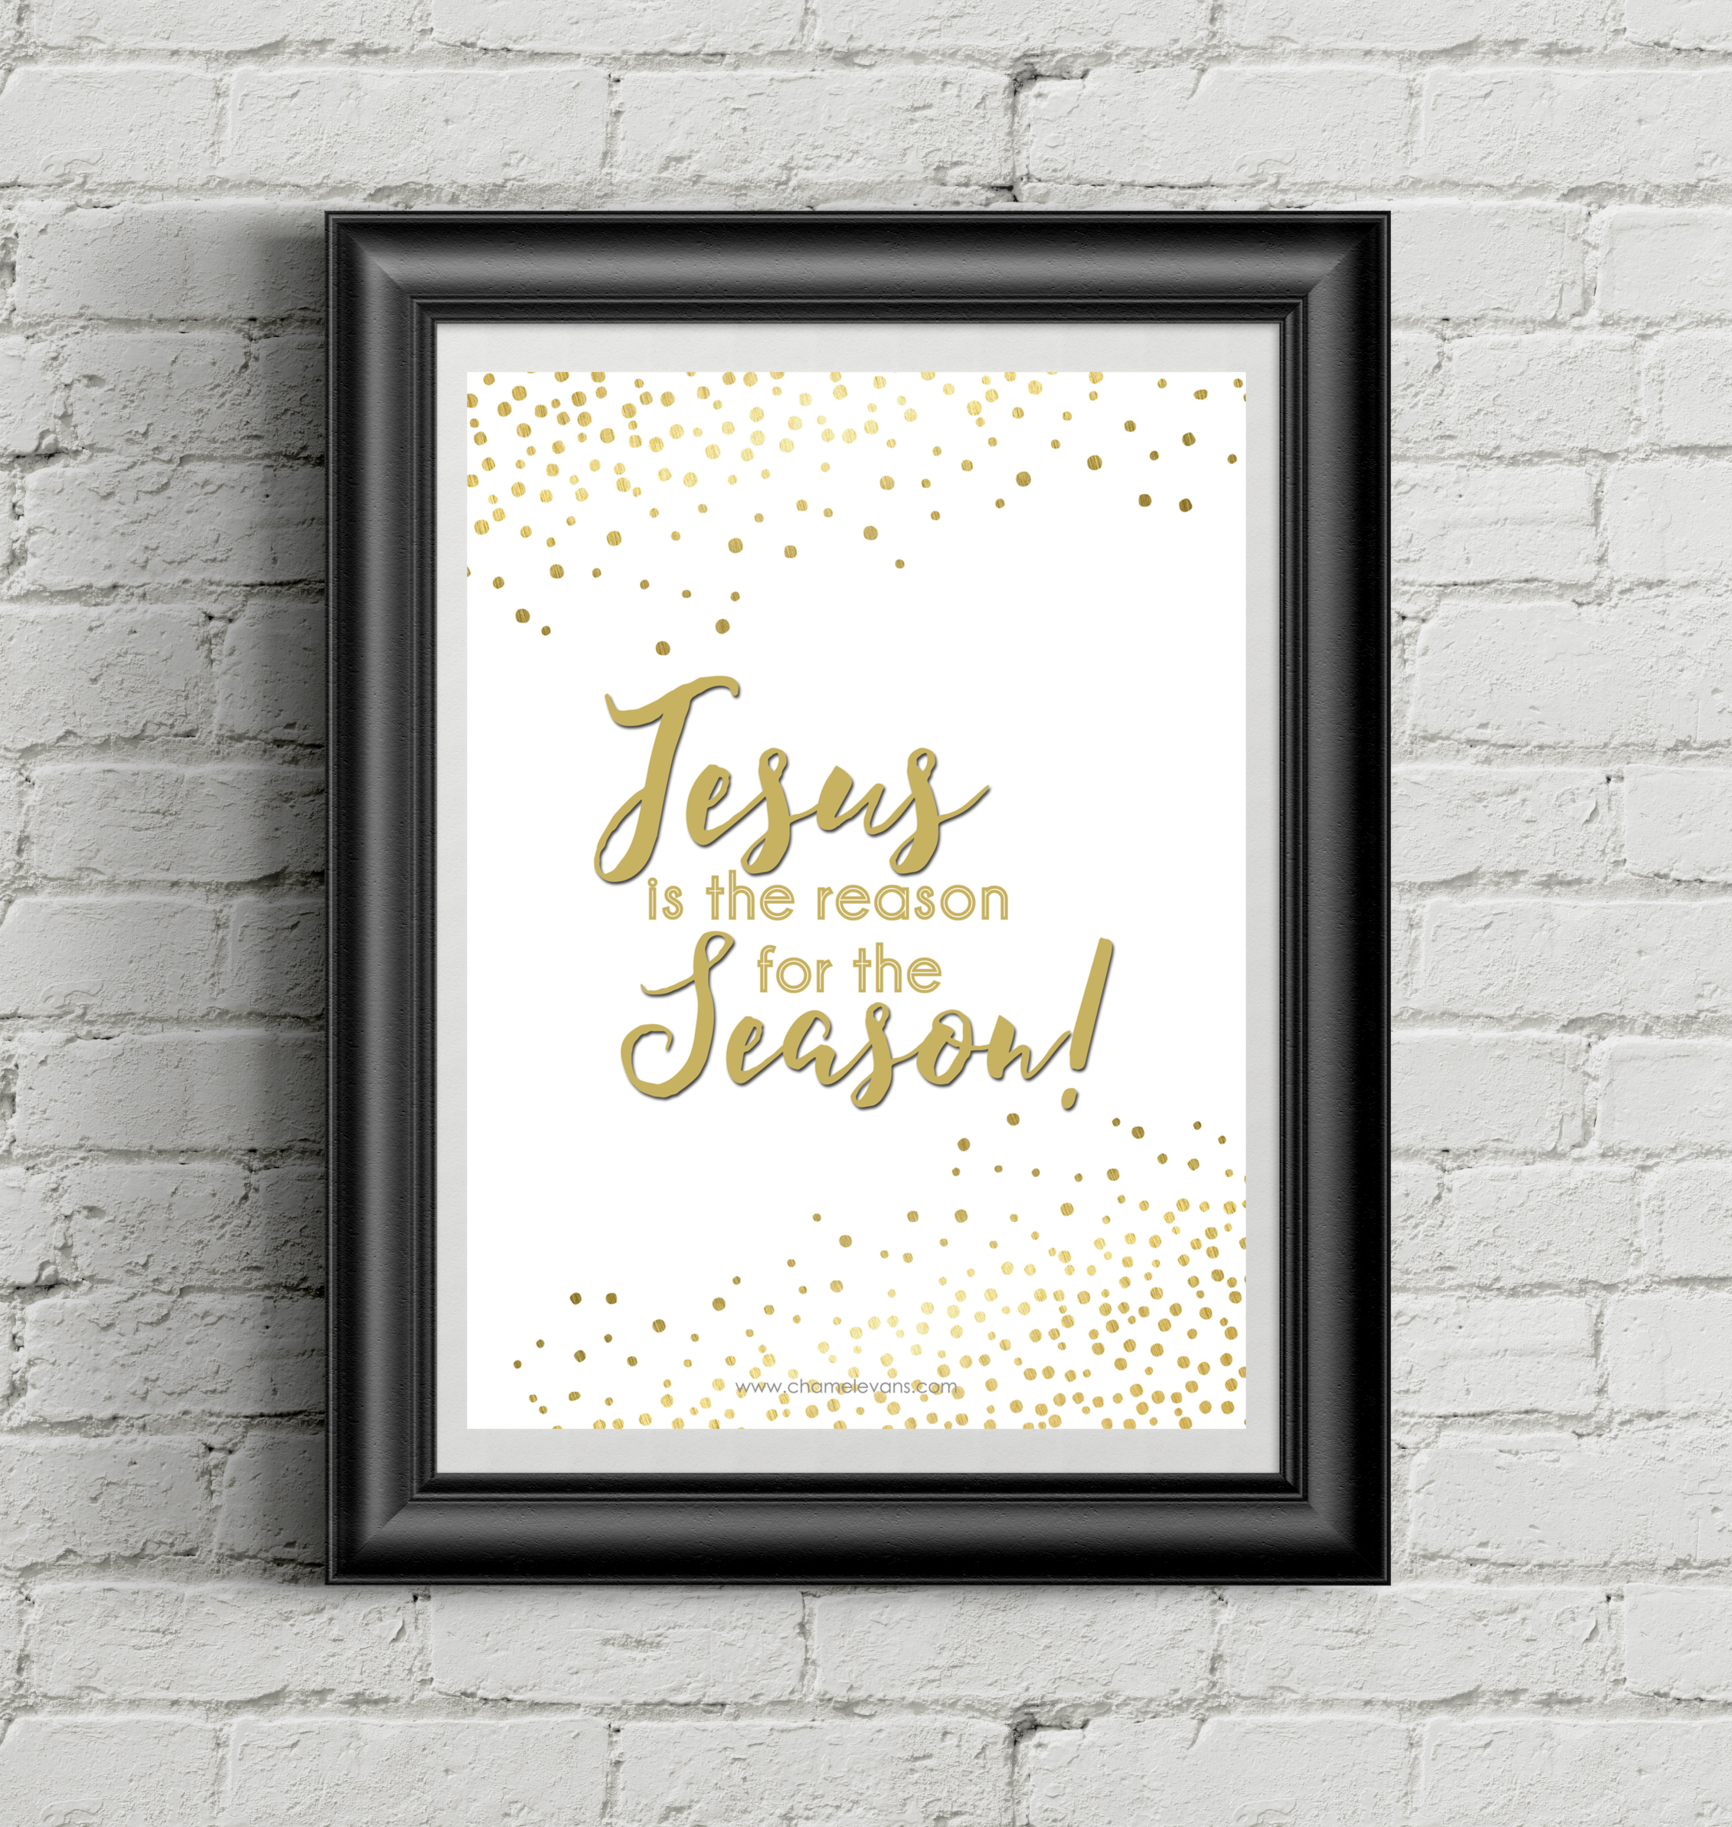 Jesus is the Reason for the Season FREE Printable by Chamel Evans   www.chamelevans.com